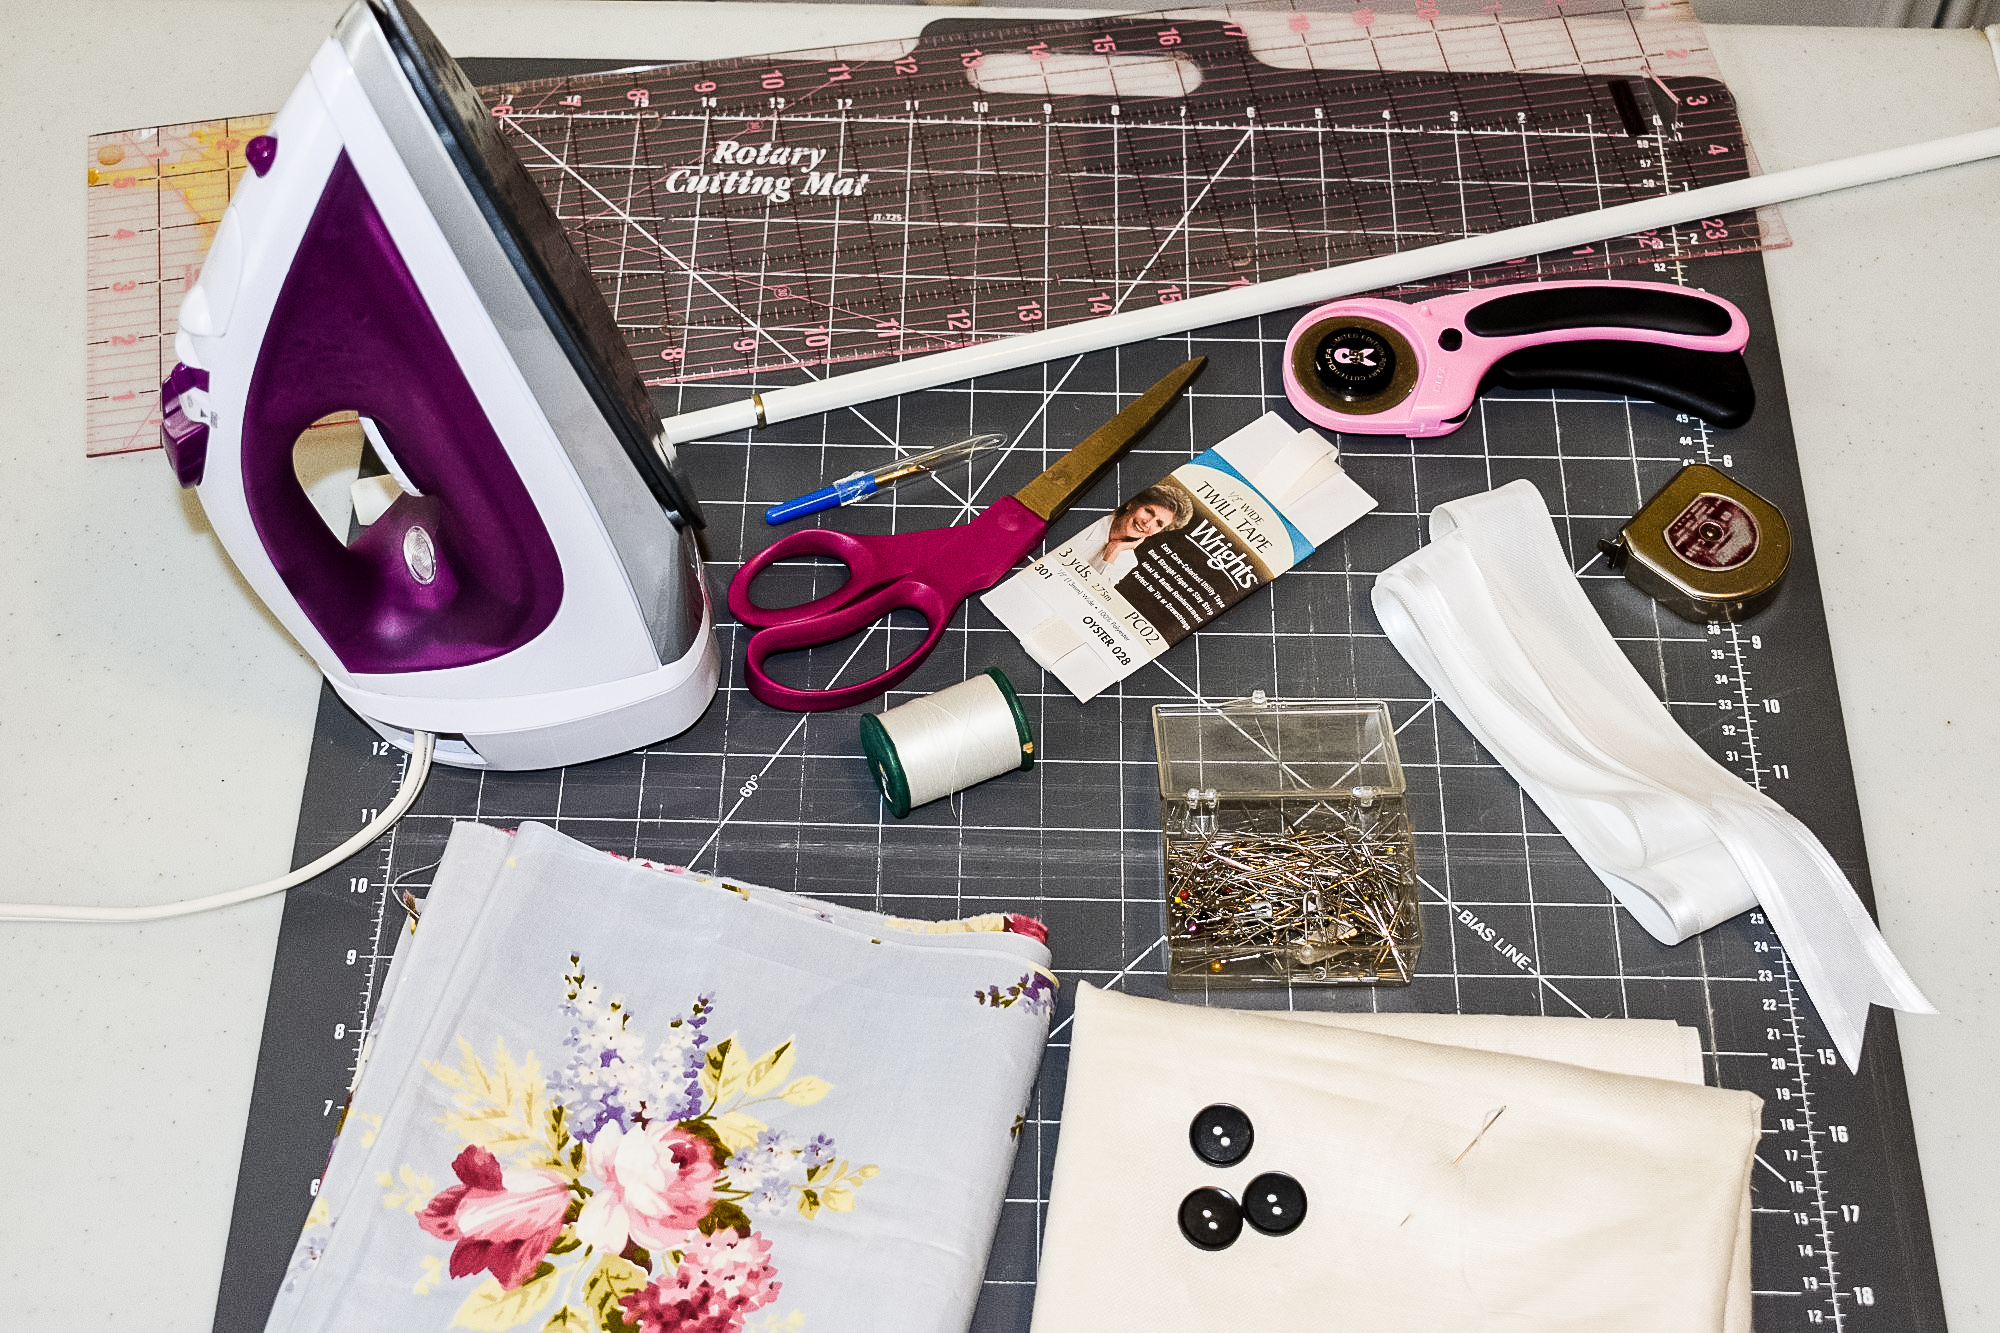 fabric, notions and tools needed to make diy button up shades